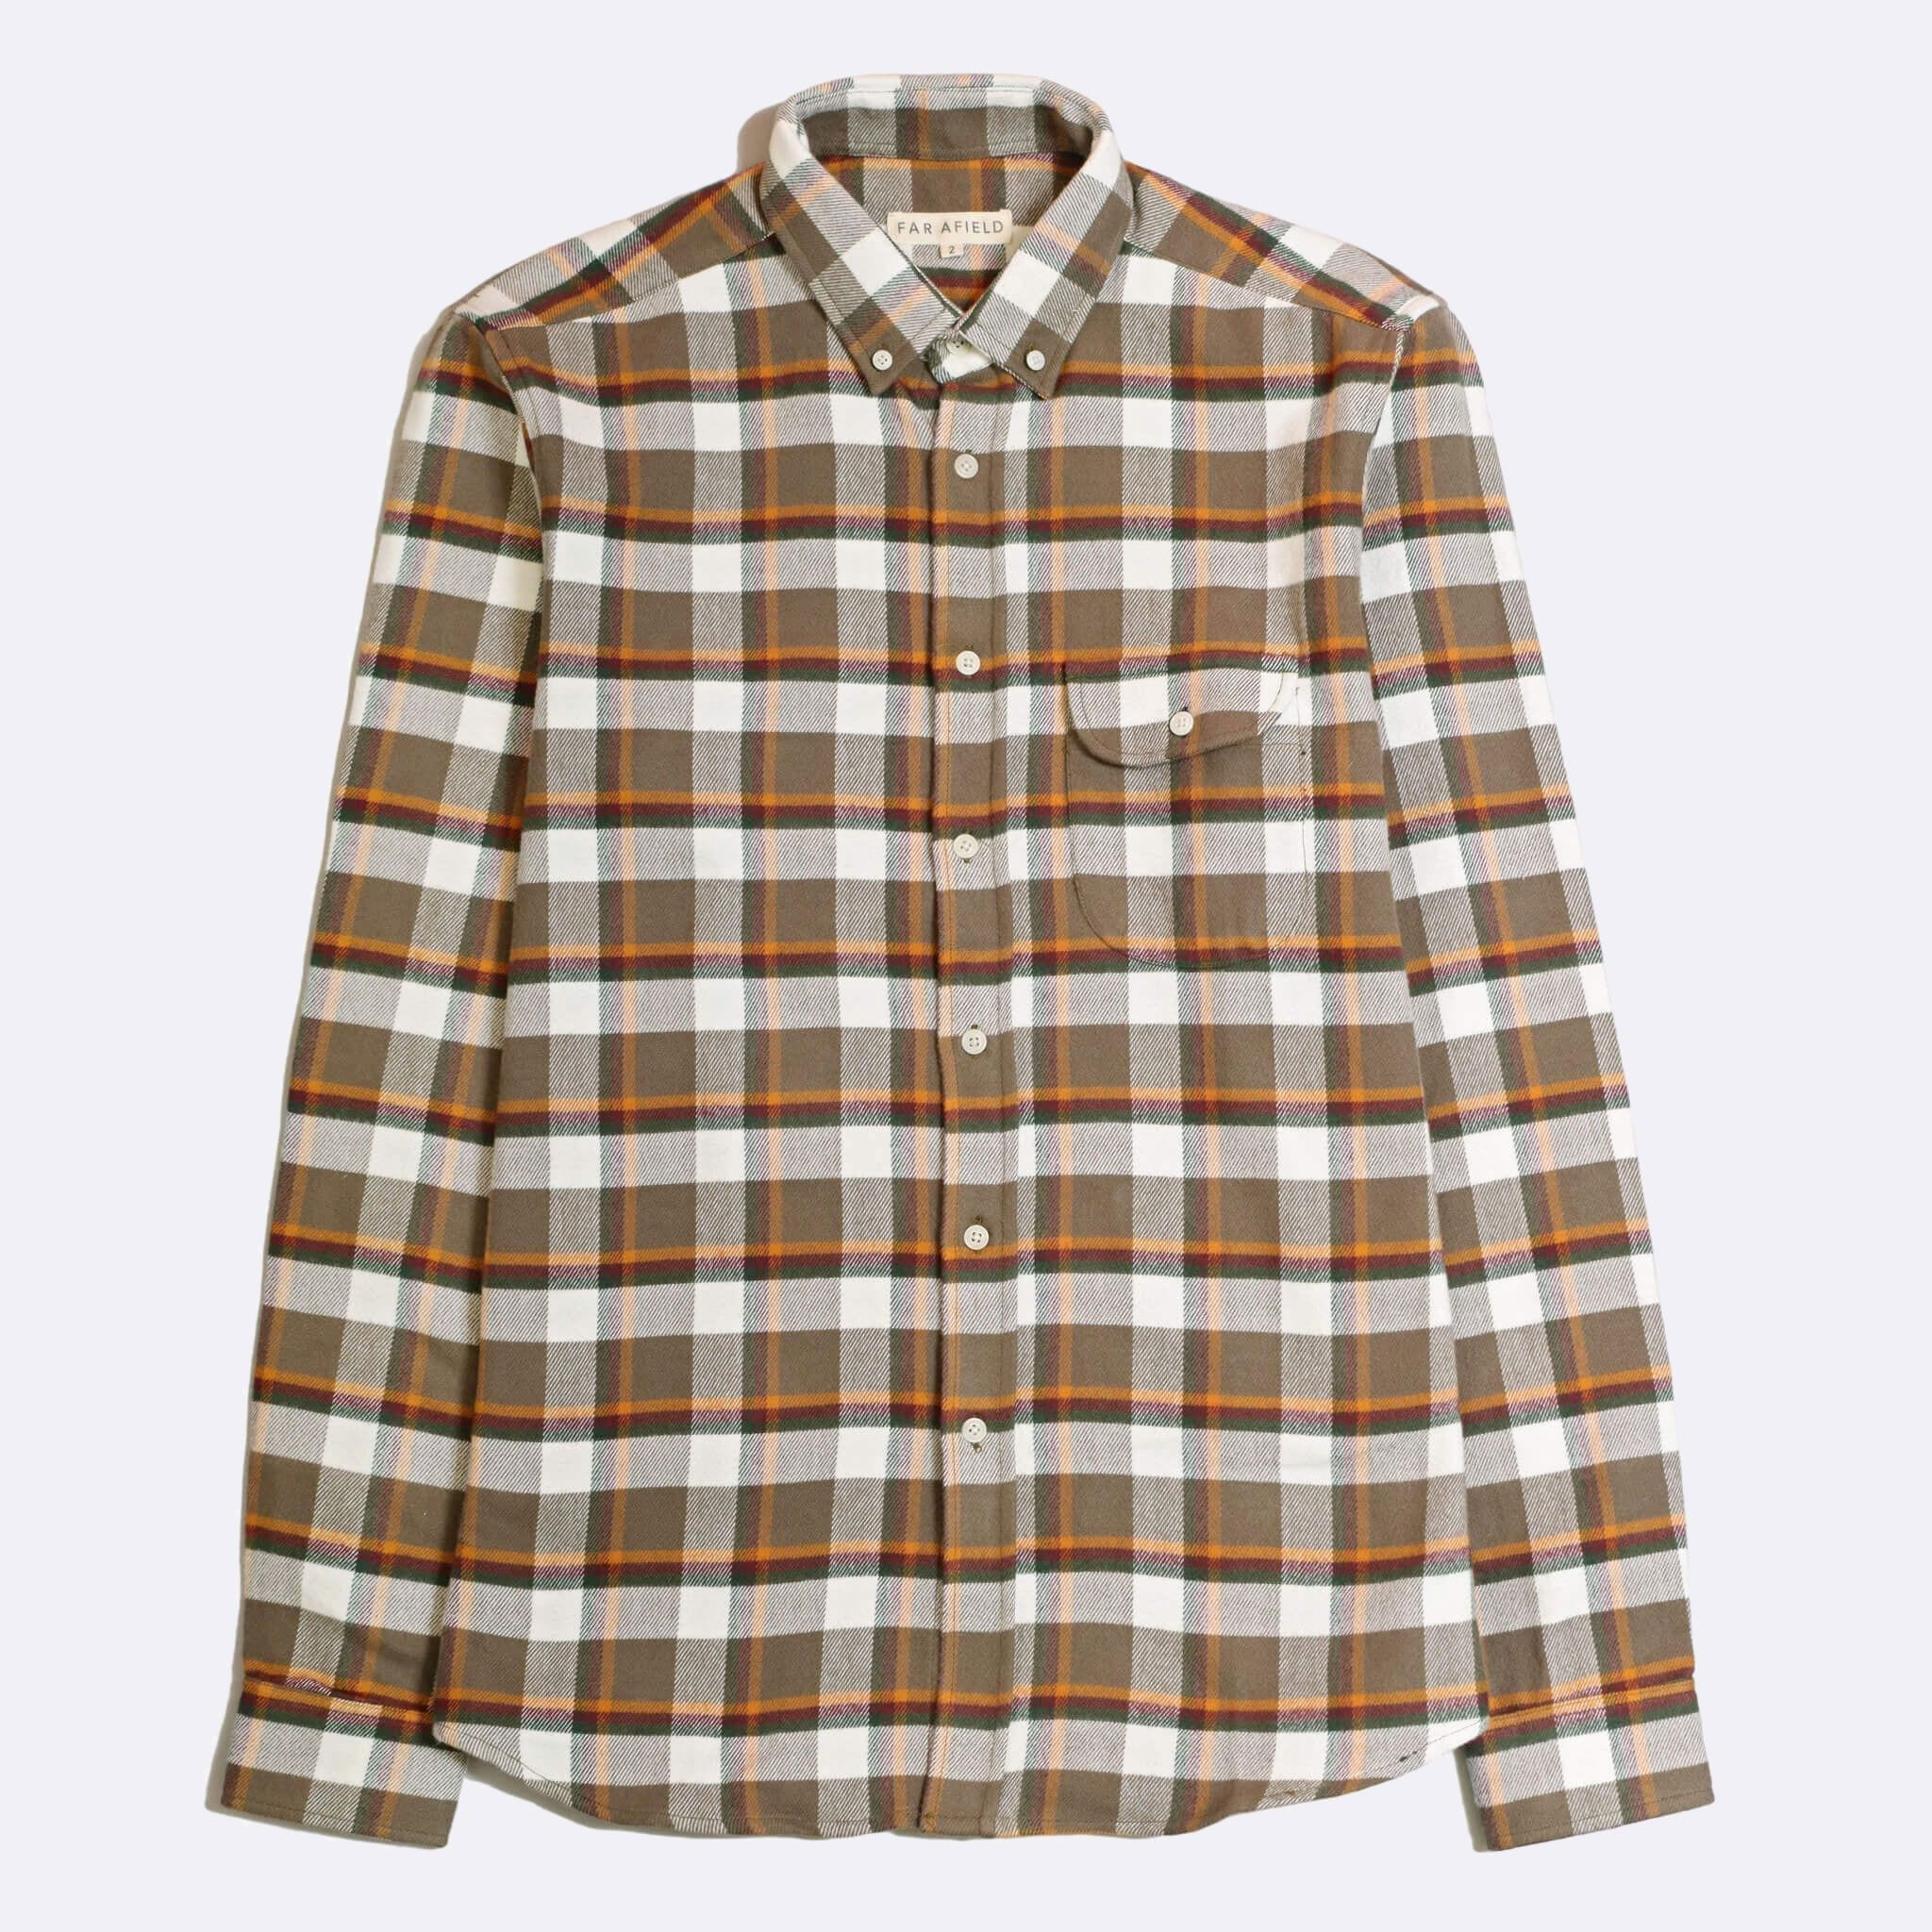 Far Afield Larry Long Sleeve Shirt a Moscow Check BCI Cotton Fabric/Cotton Flannel Work Lumberjack Check Casual